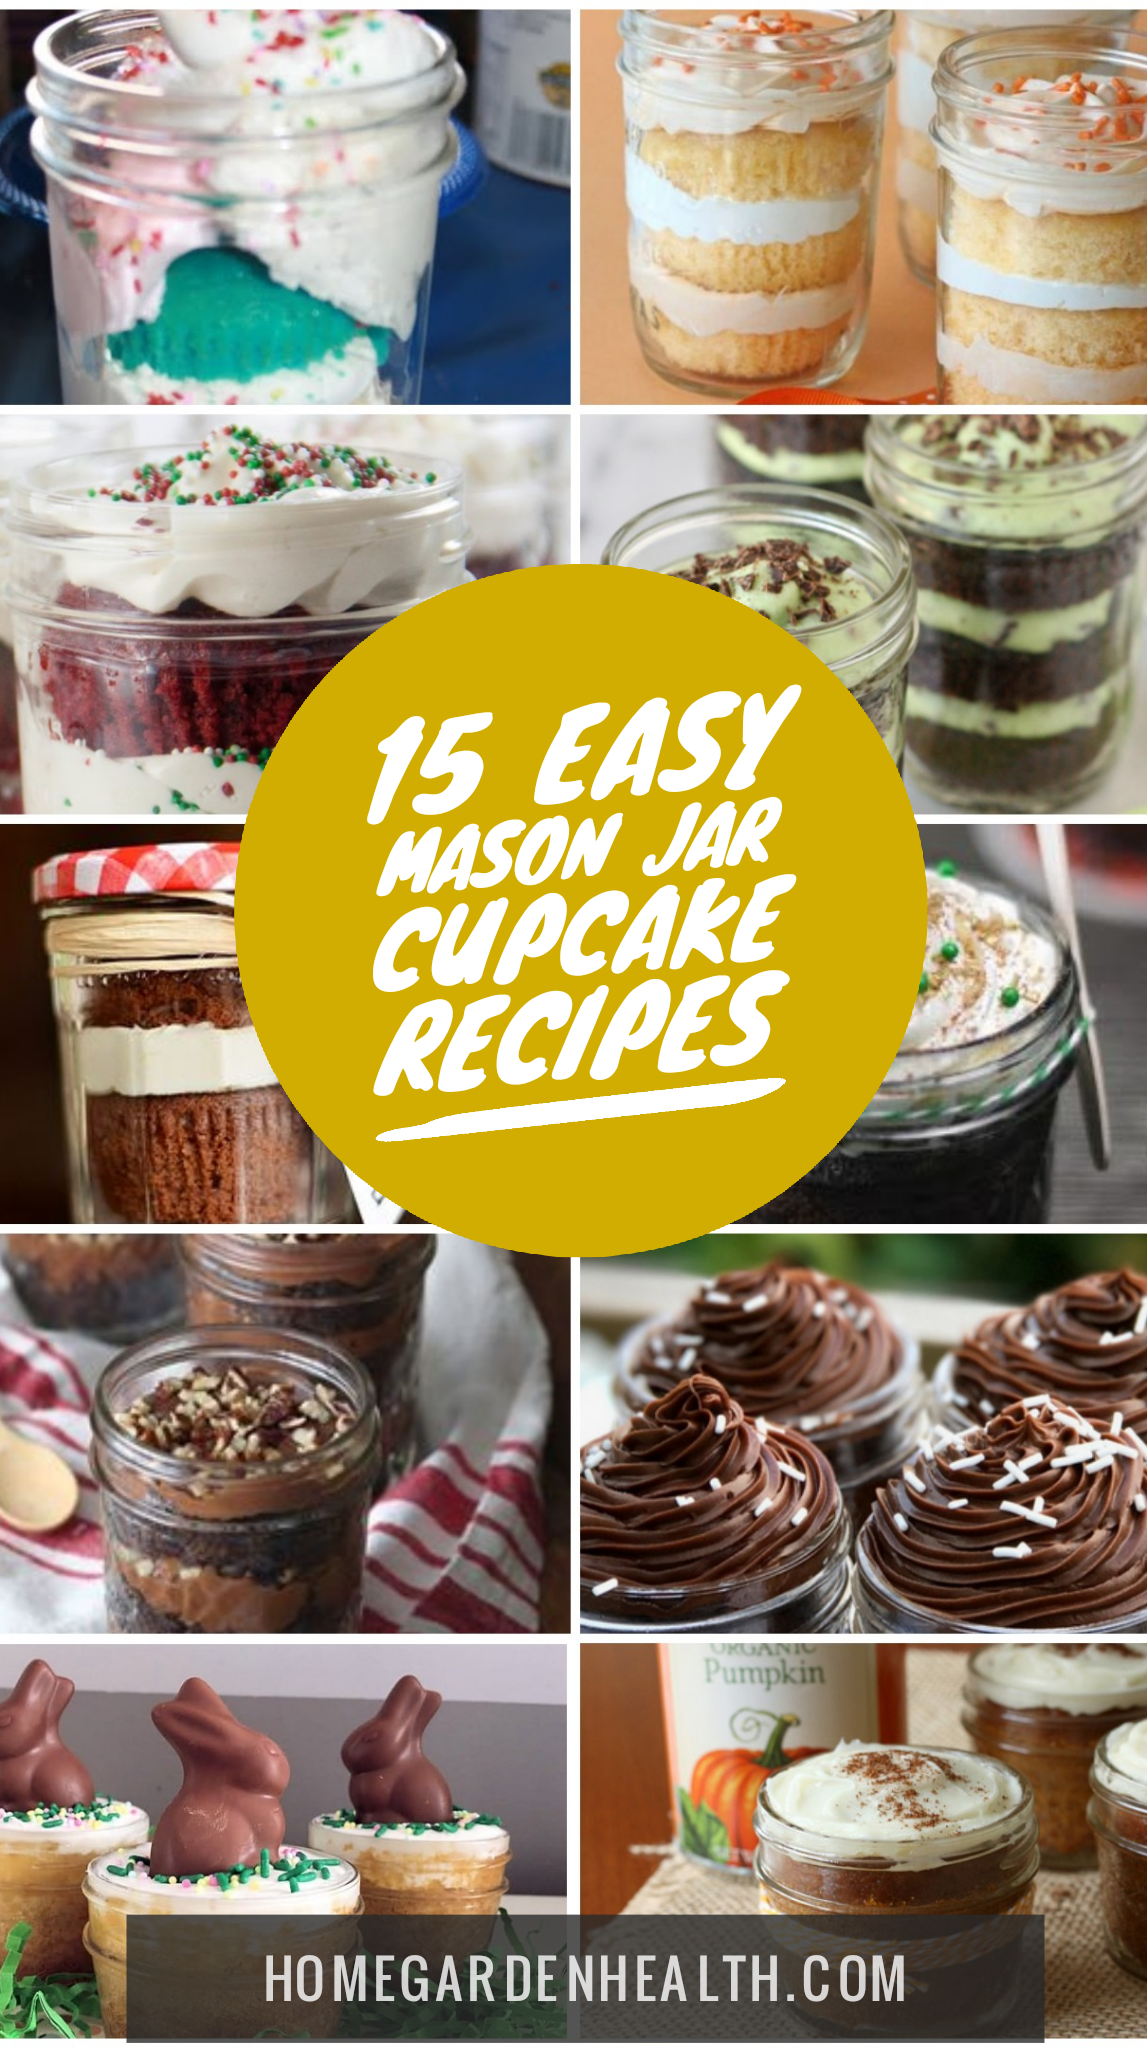 15 Easy Cake In A Jar Recipes Diy Mason Jar Cupcakes 16 Cake Mini Mason Jars Ideas How Do It Info